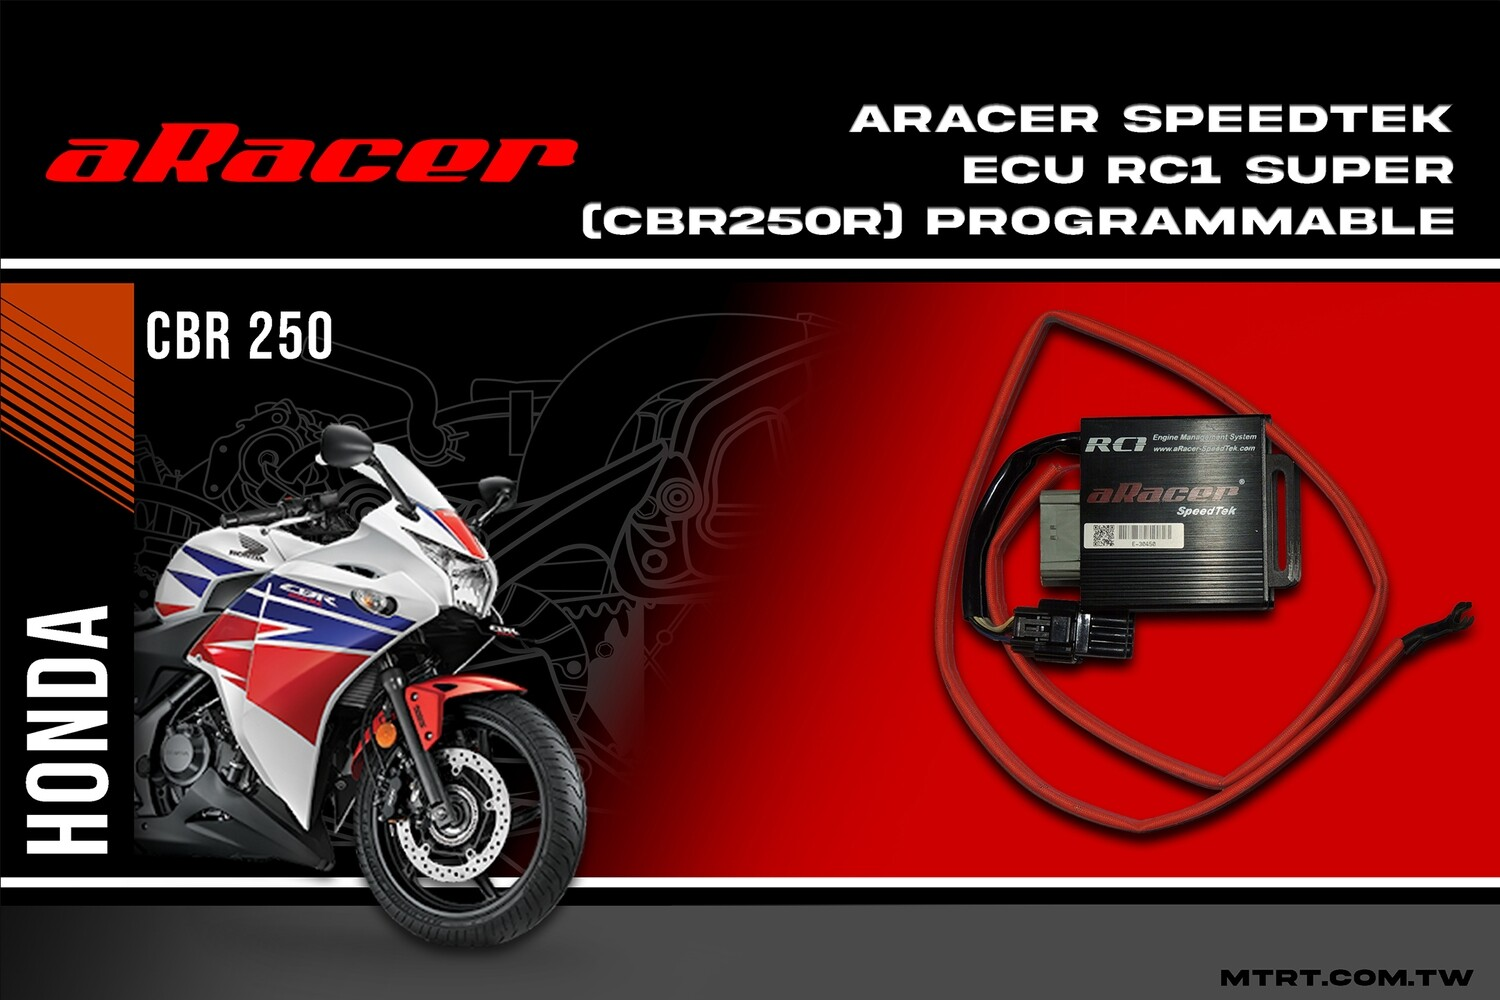 ARACER speedtek ECU RC1 SUPER (CBR250R) programmable 62517